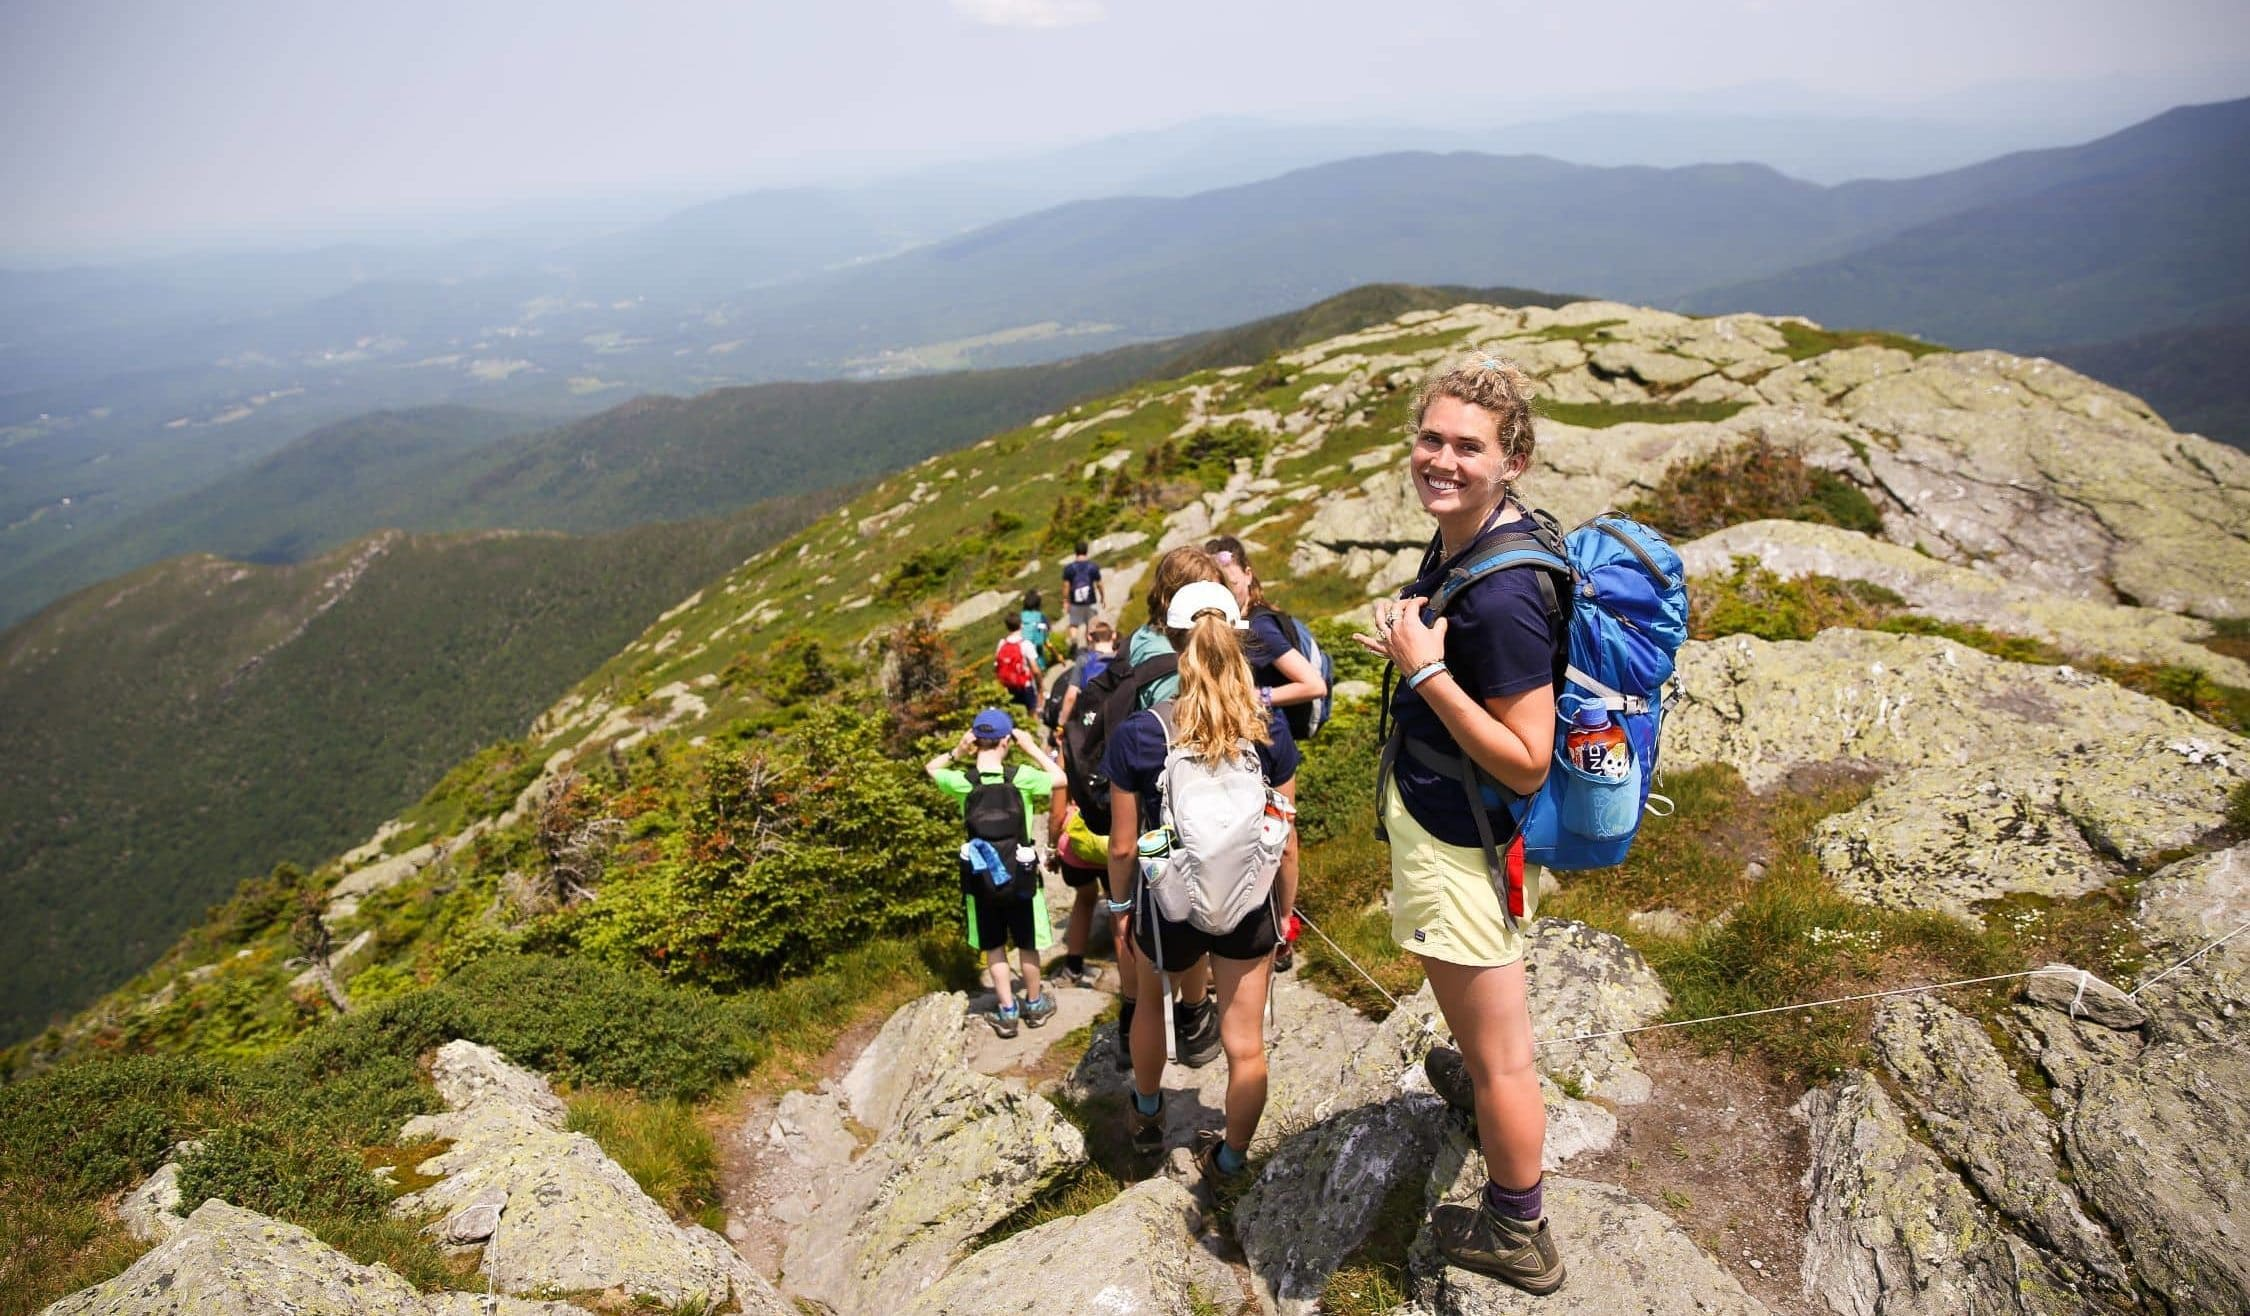 Teens on the summit of a mountain during this summer adventure in New England